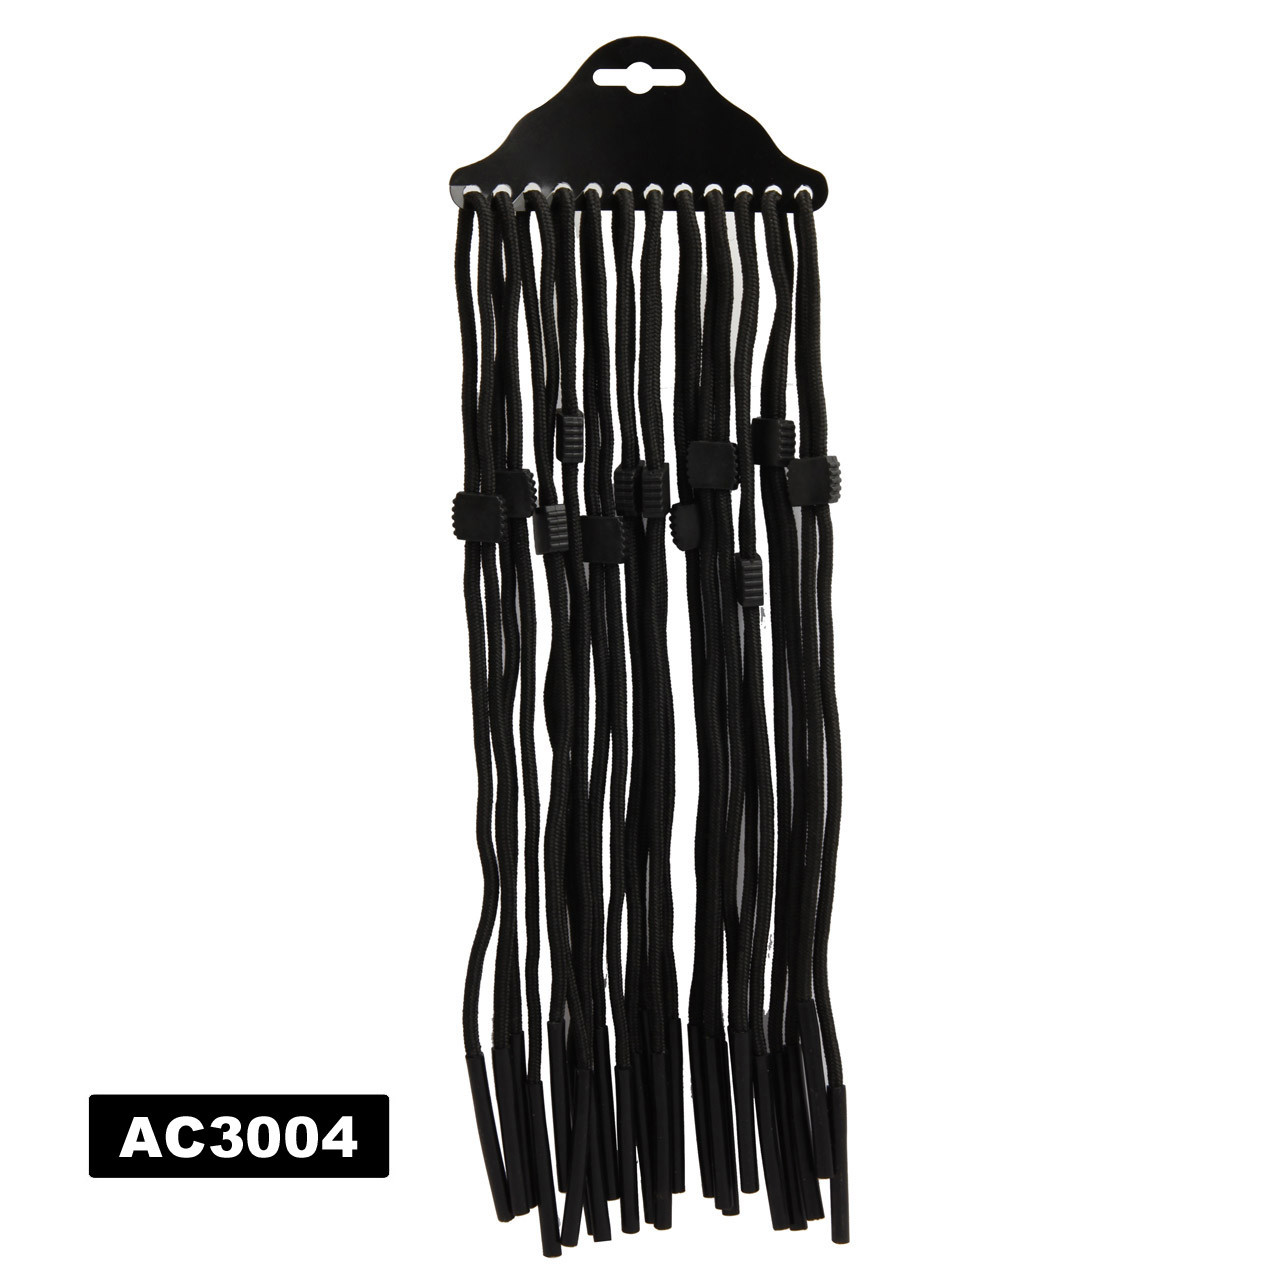 Adjustable Wholesale Sunglass Straps - AC3004